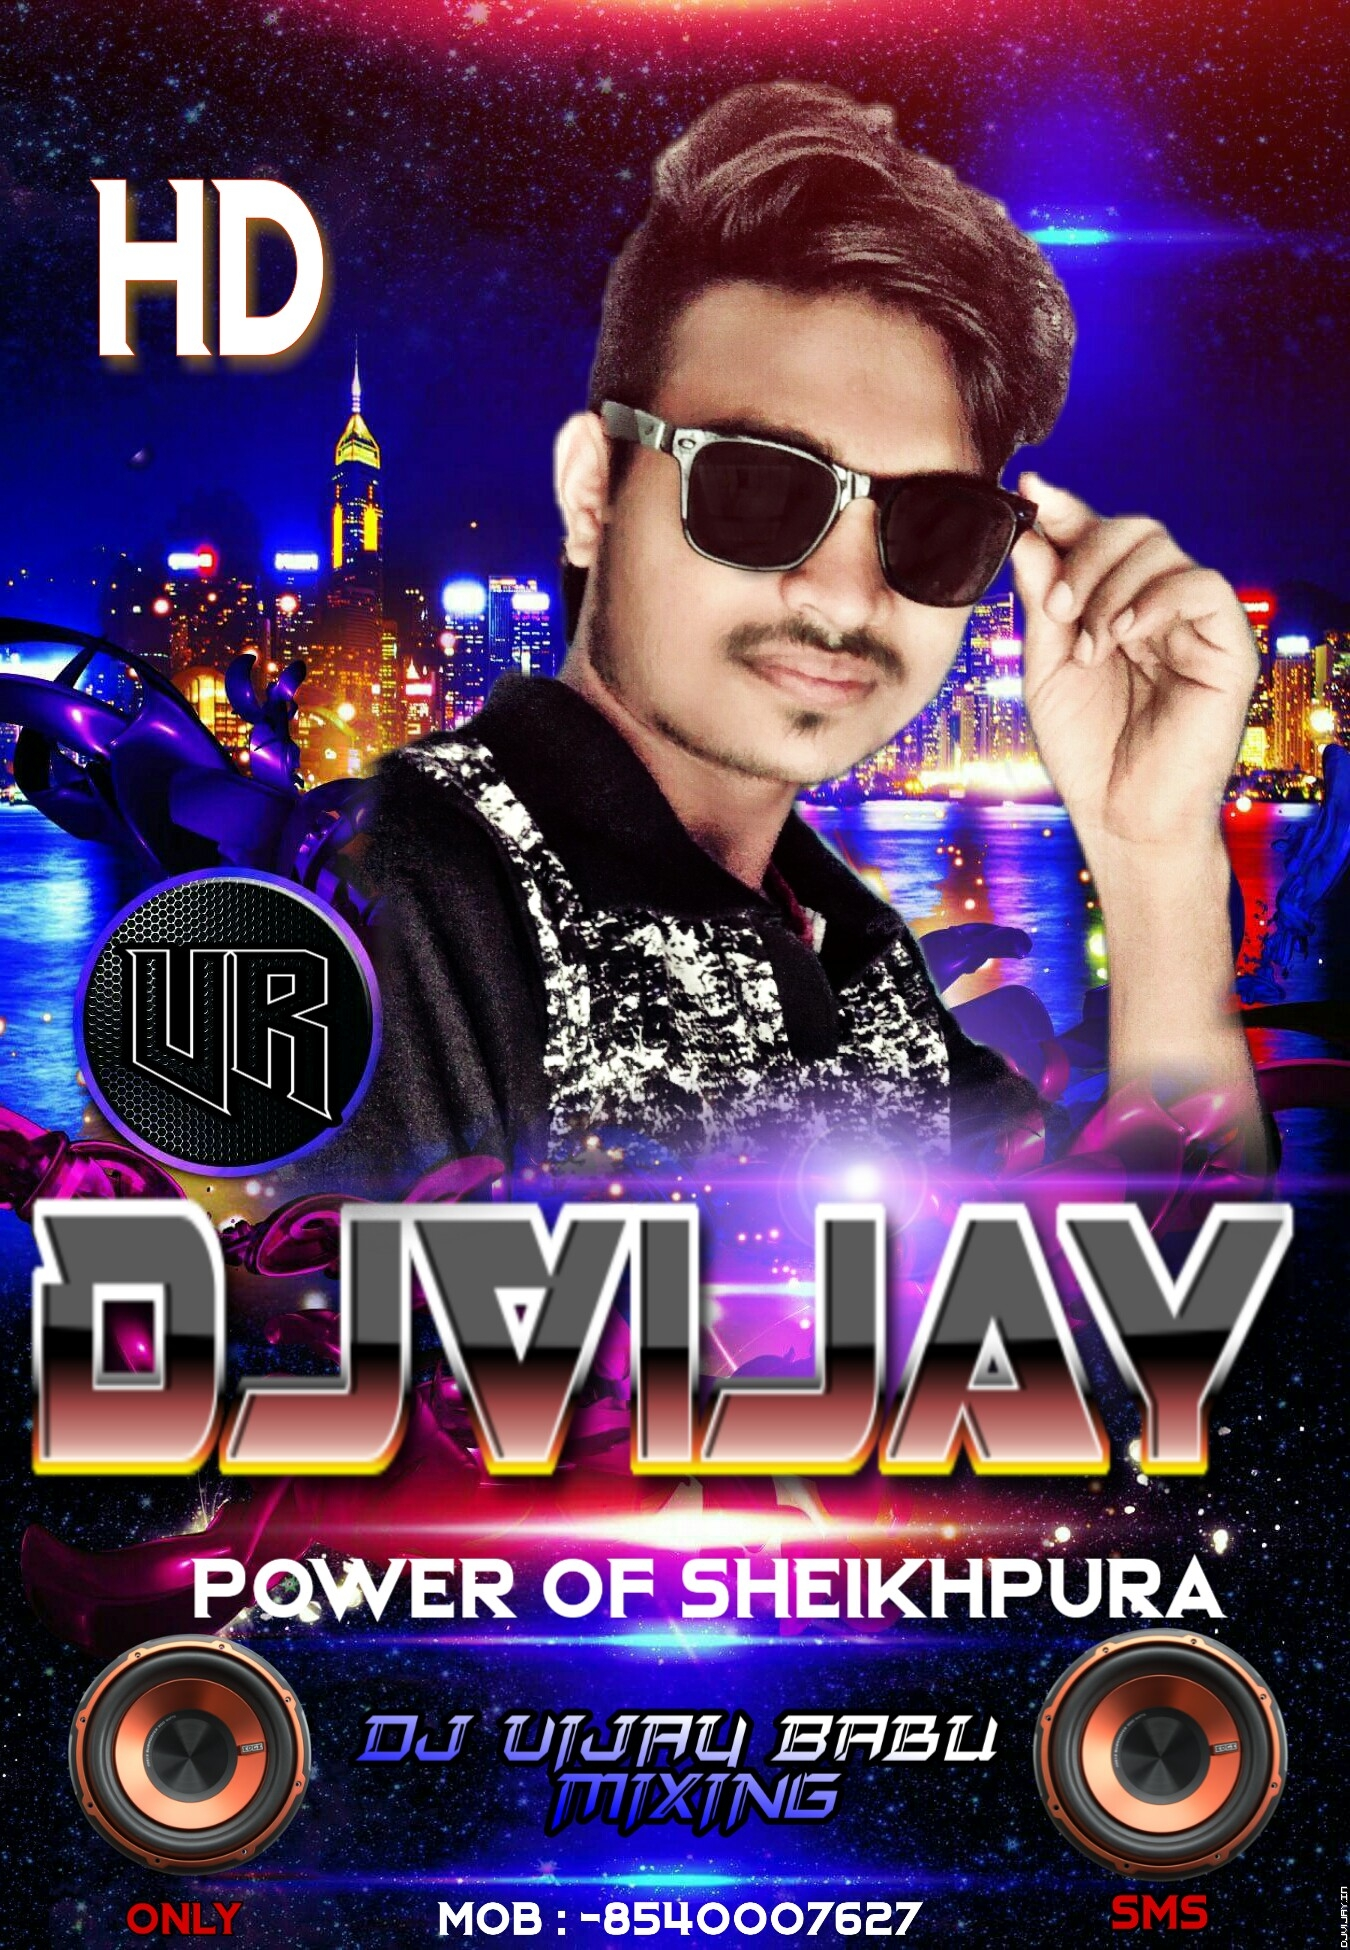 Tuku Tukur Dekhte Ho Kya Vs Riba Riba Hindi Song Mix Dj Vijay.mp3